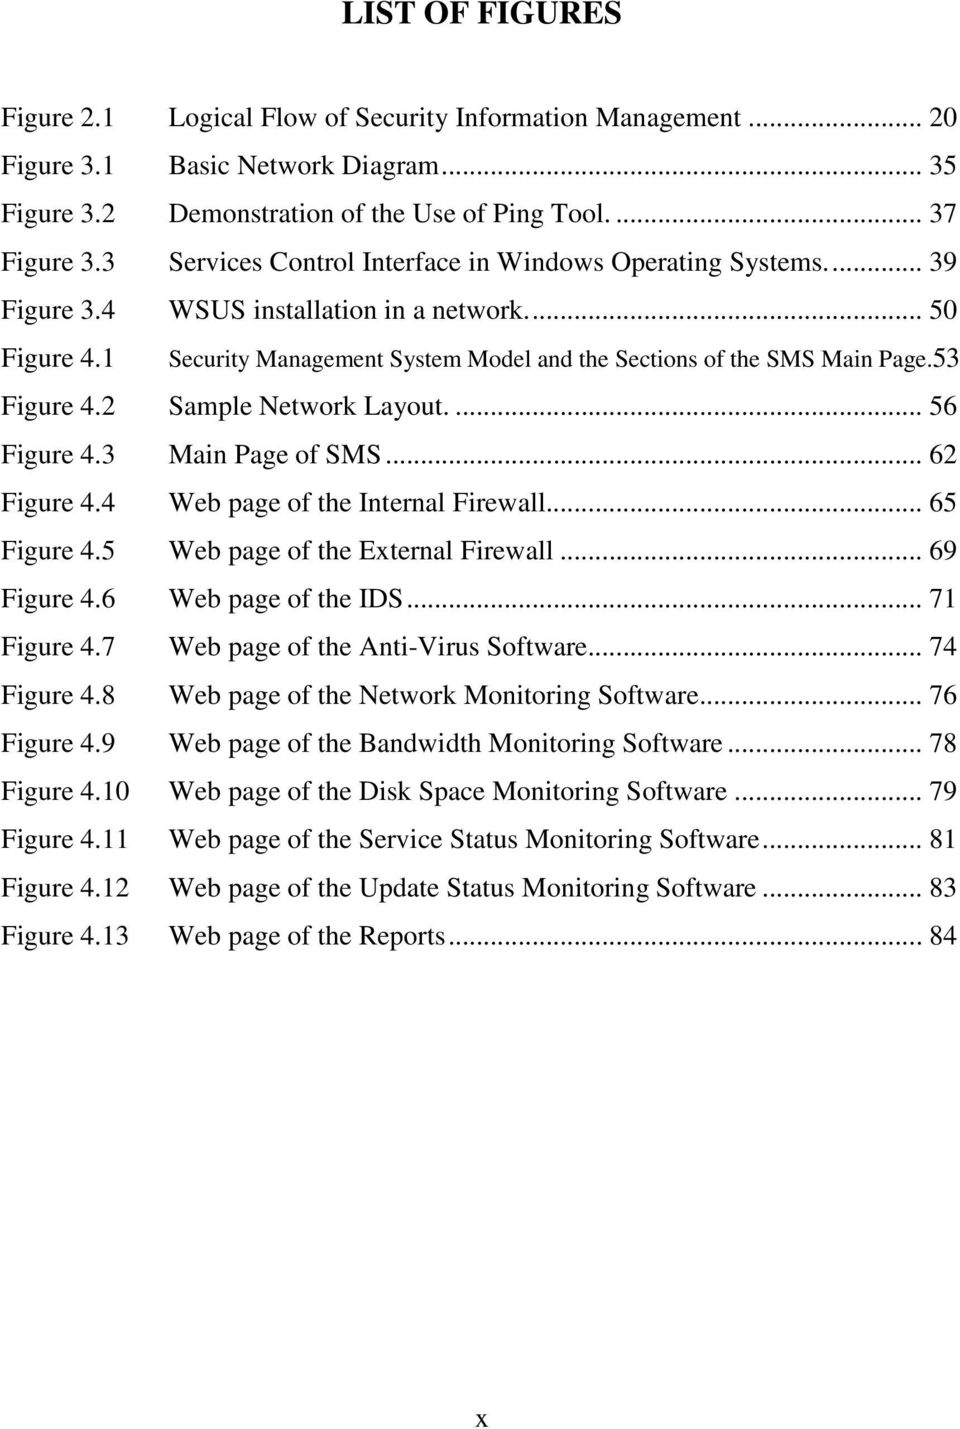 53 Figure 4.2 Sample Network Layout.... 56 Figure 4.3 Main Page of SMS... 62 Figure 4.4 Web page of the Internal Firewall... 65 Figure 4.5 Web page of the External Firewall... 69 Figure 4.